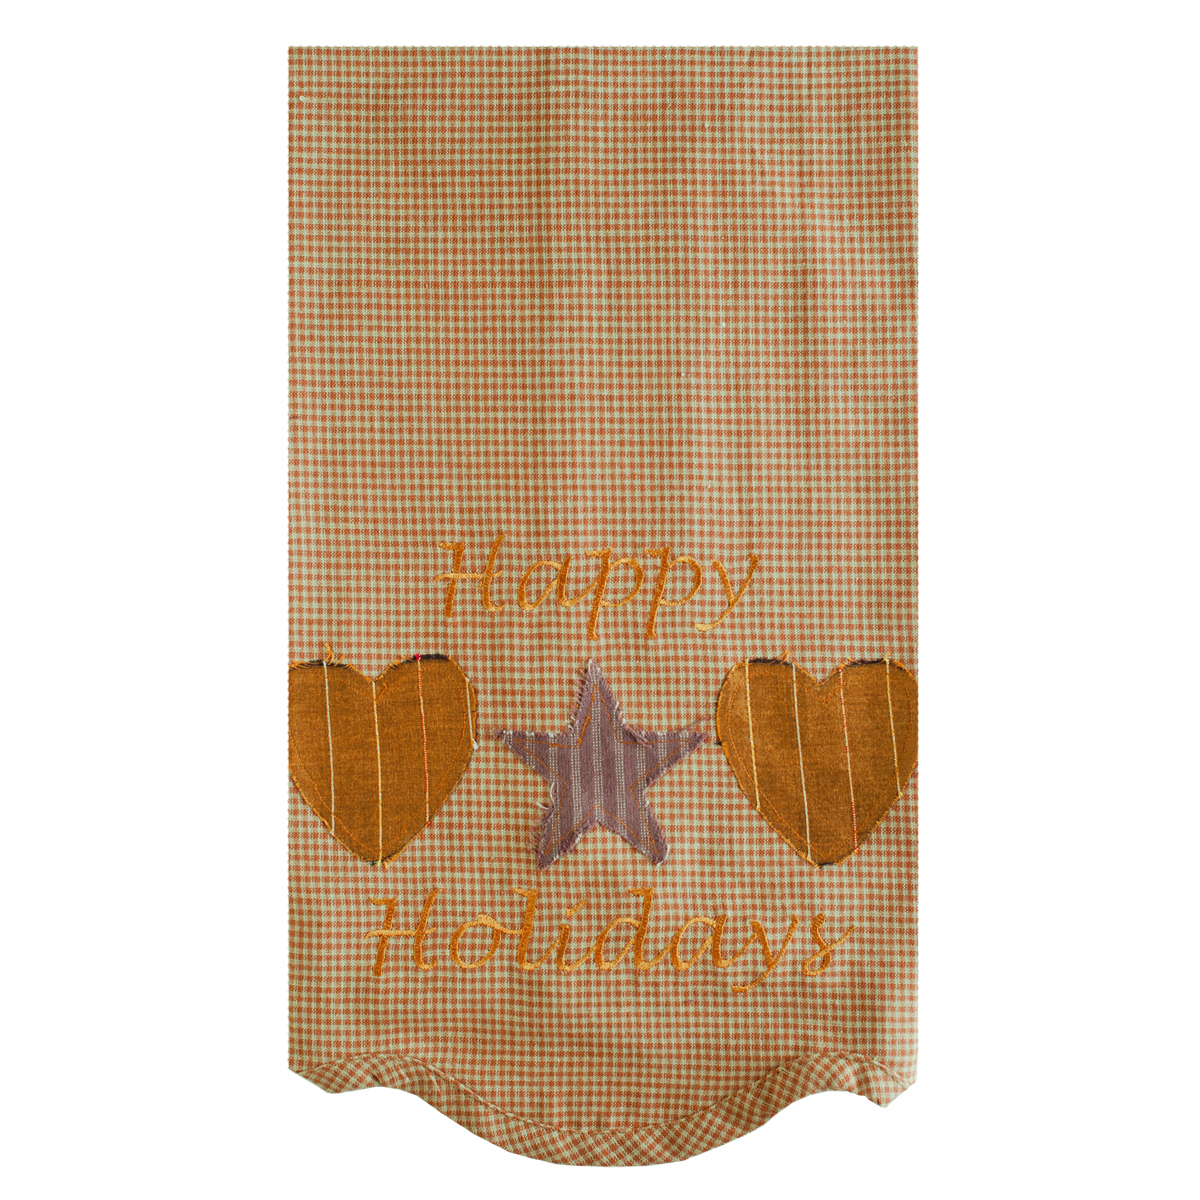 Hearts and Stars Tea Towel Set of 2 19x28